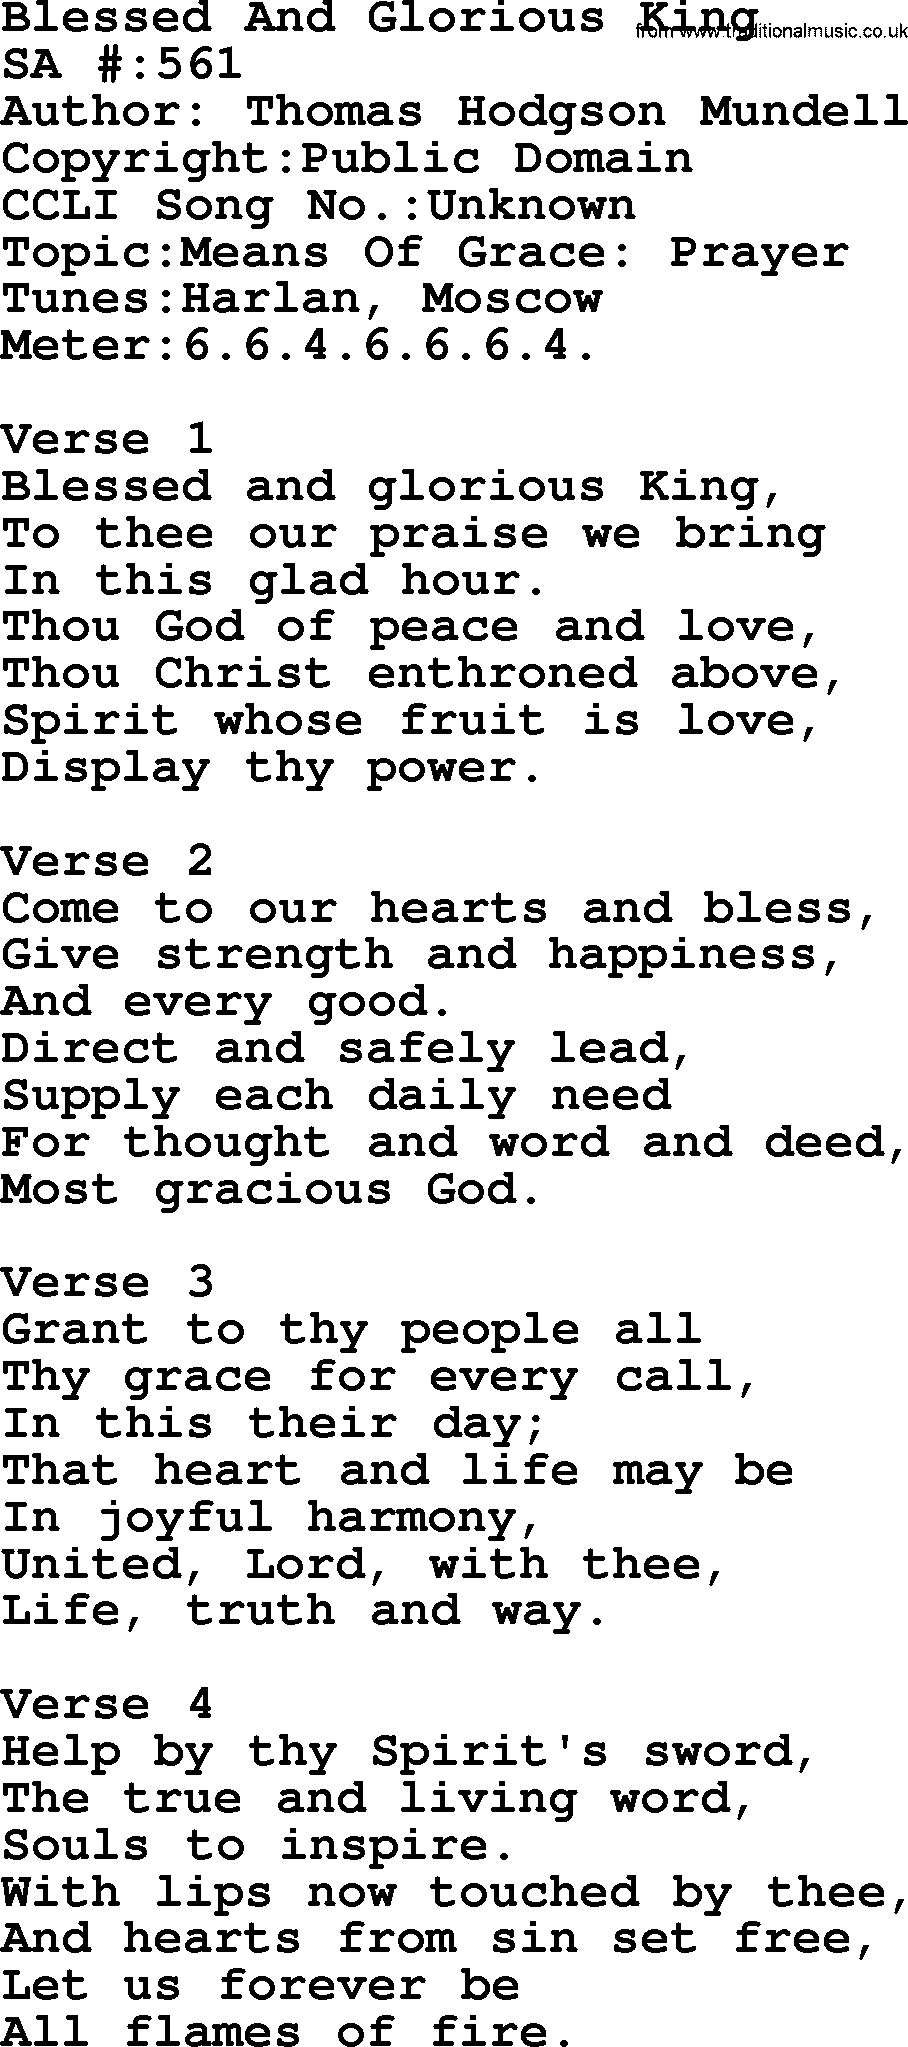 Salvation Army Hymnal Song: Blessed And Glorious King, with